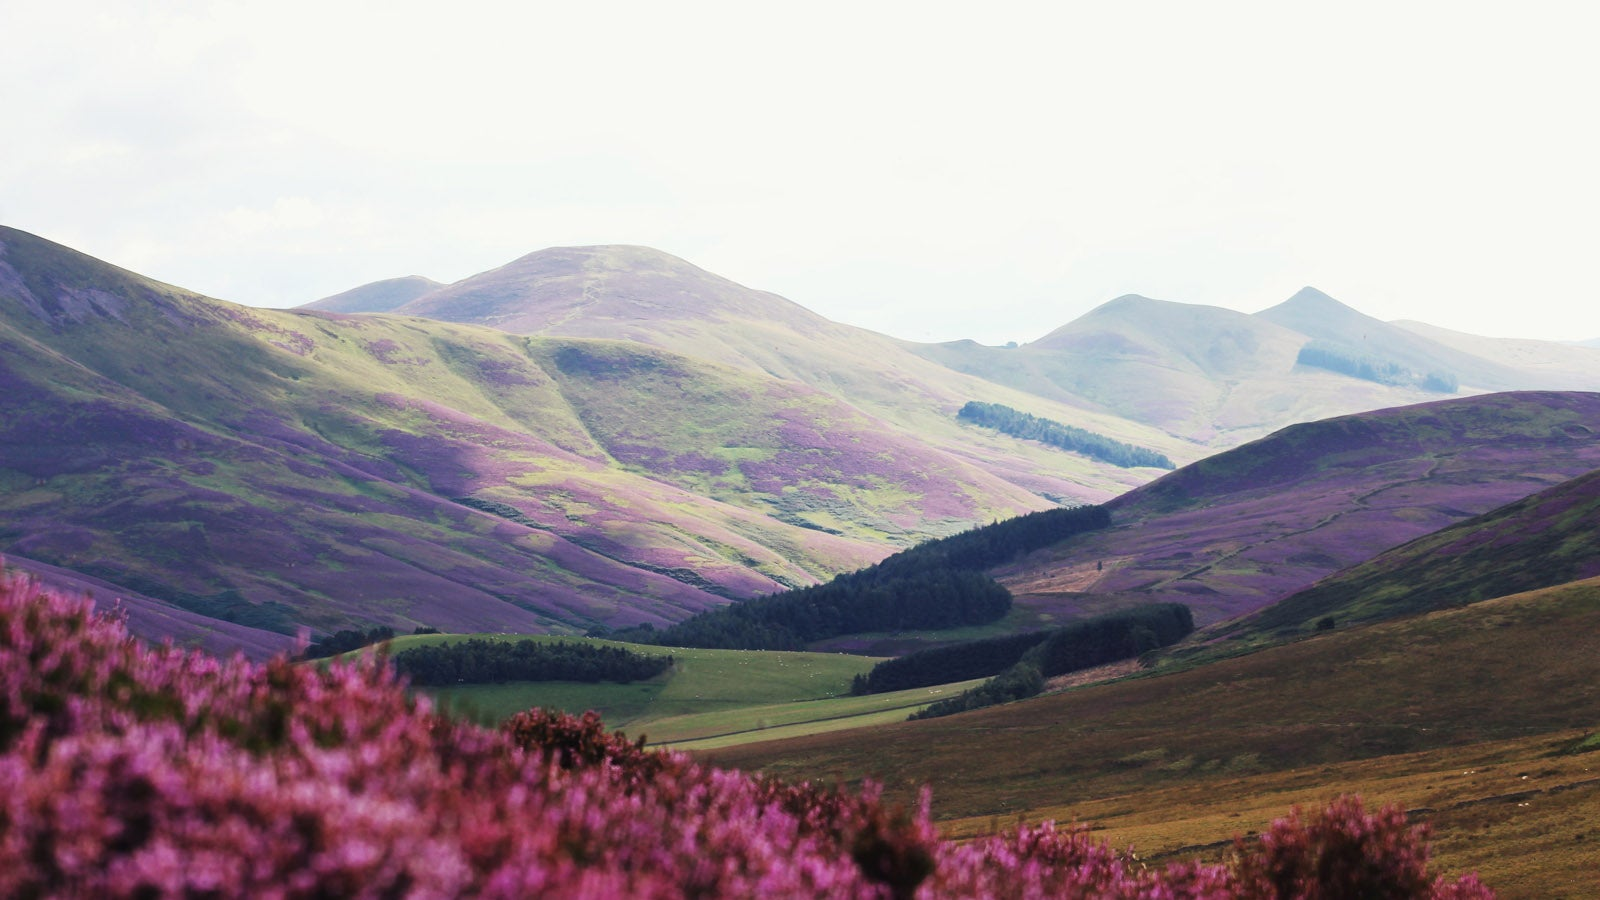 A photo of Scottish hills, with heather appearing in the foreground